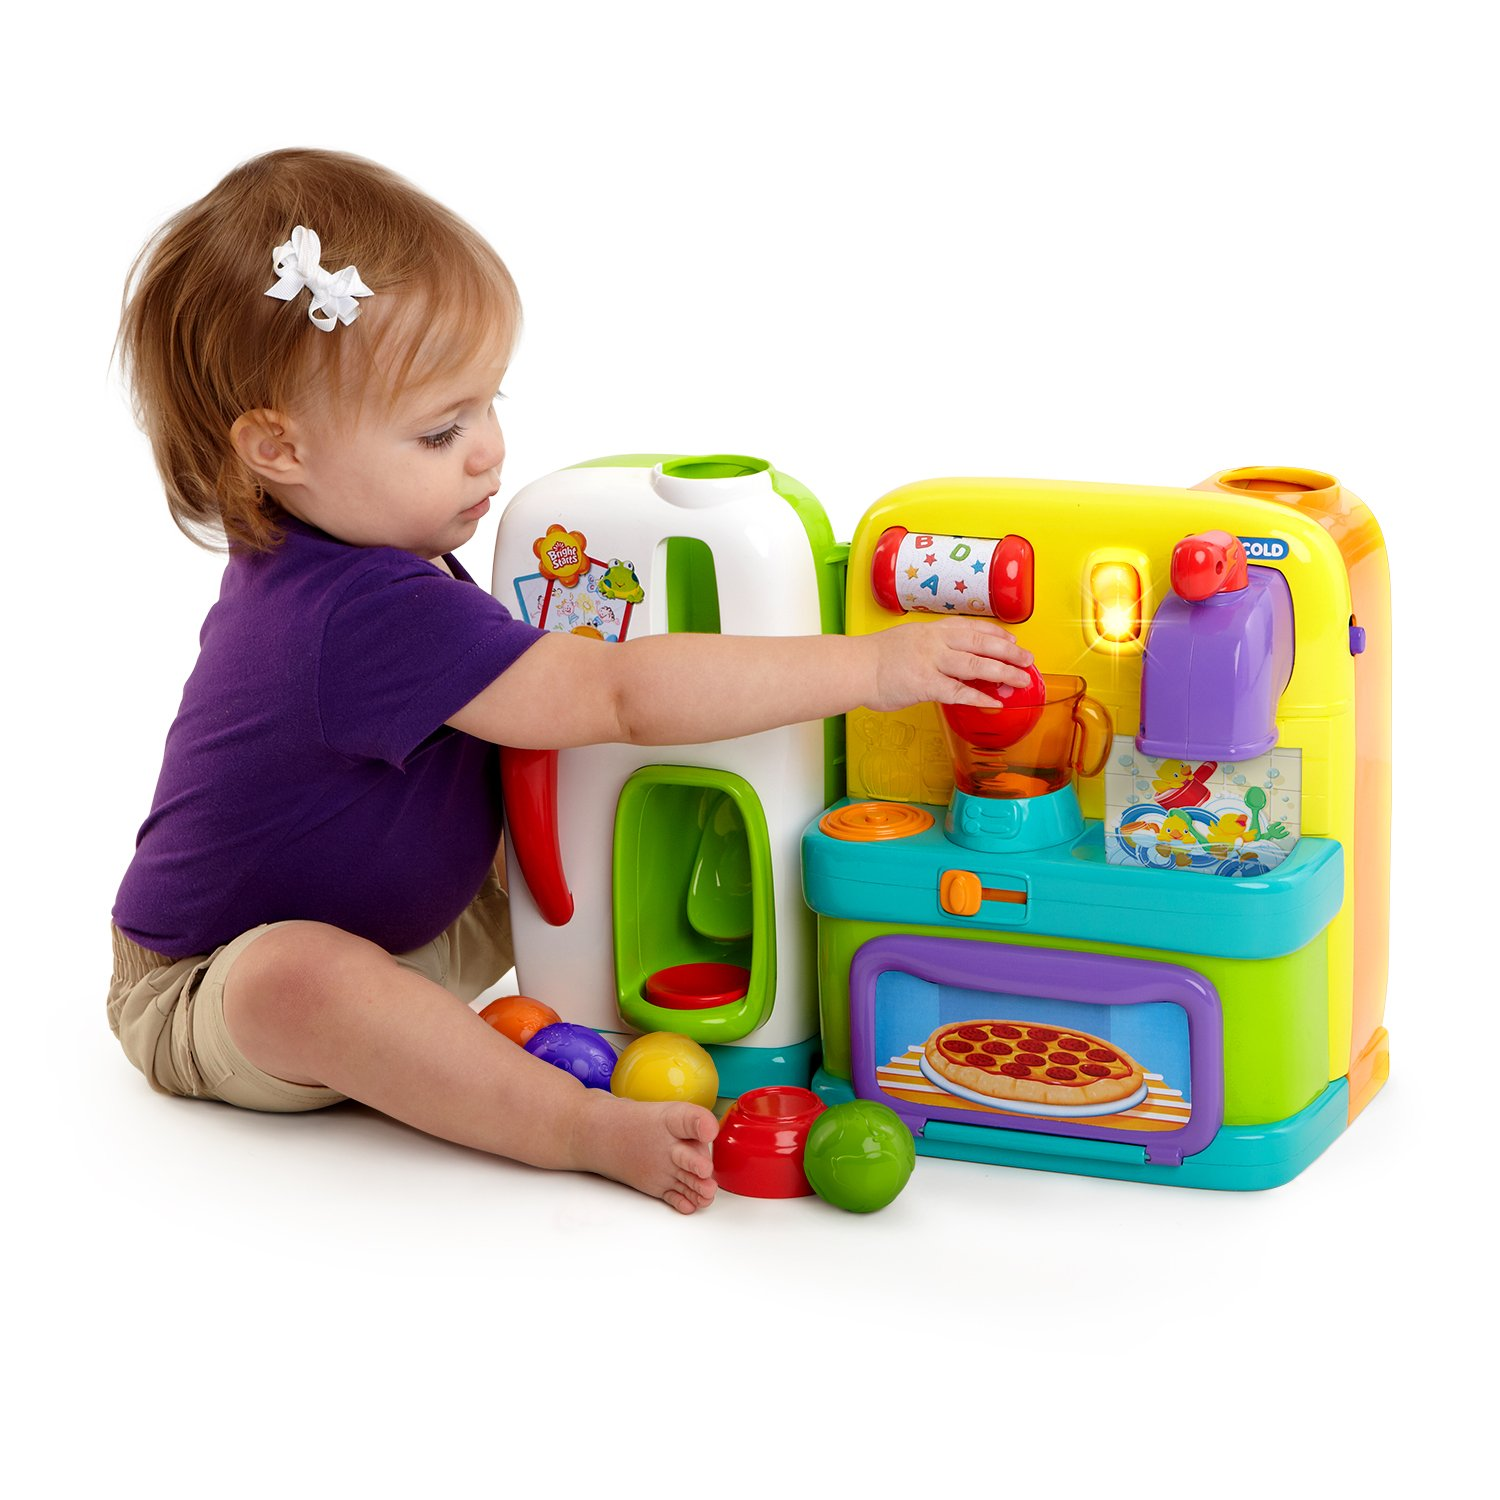 Best Toys Gifts For 1 Year Old Girls : Best christmas toys for year old girls